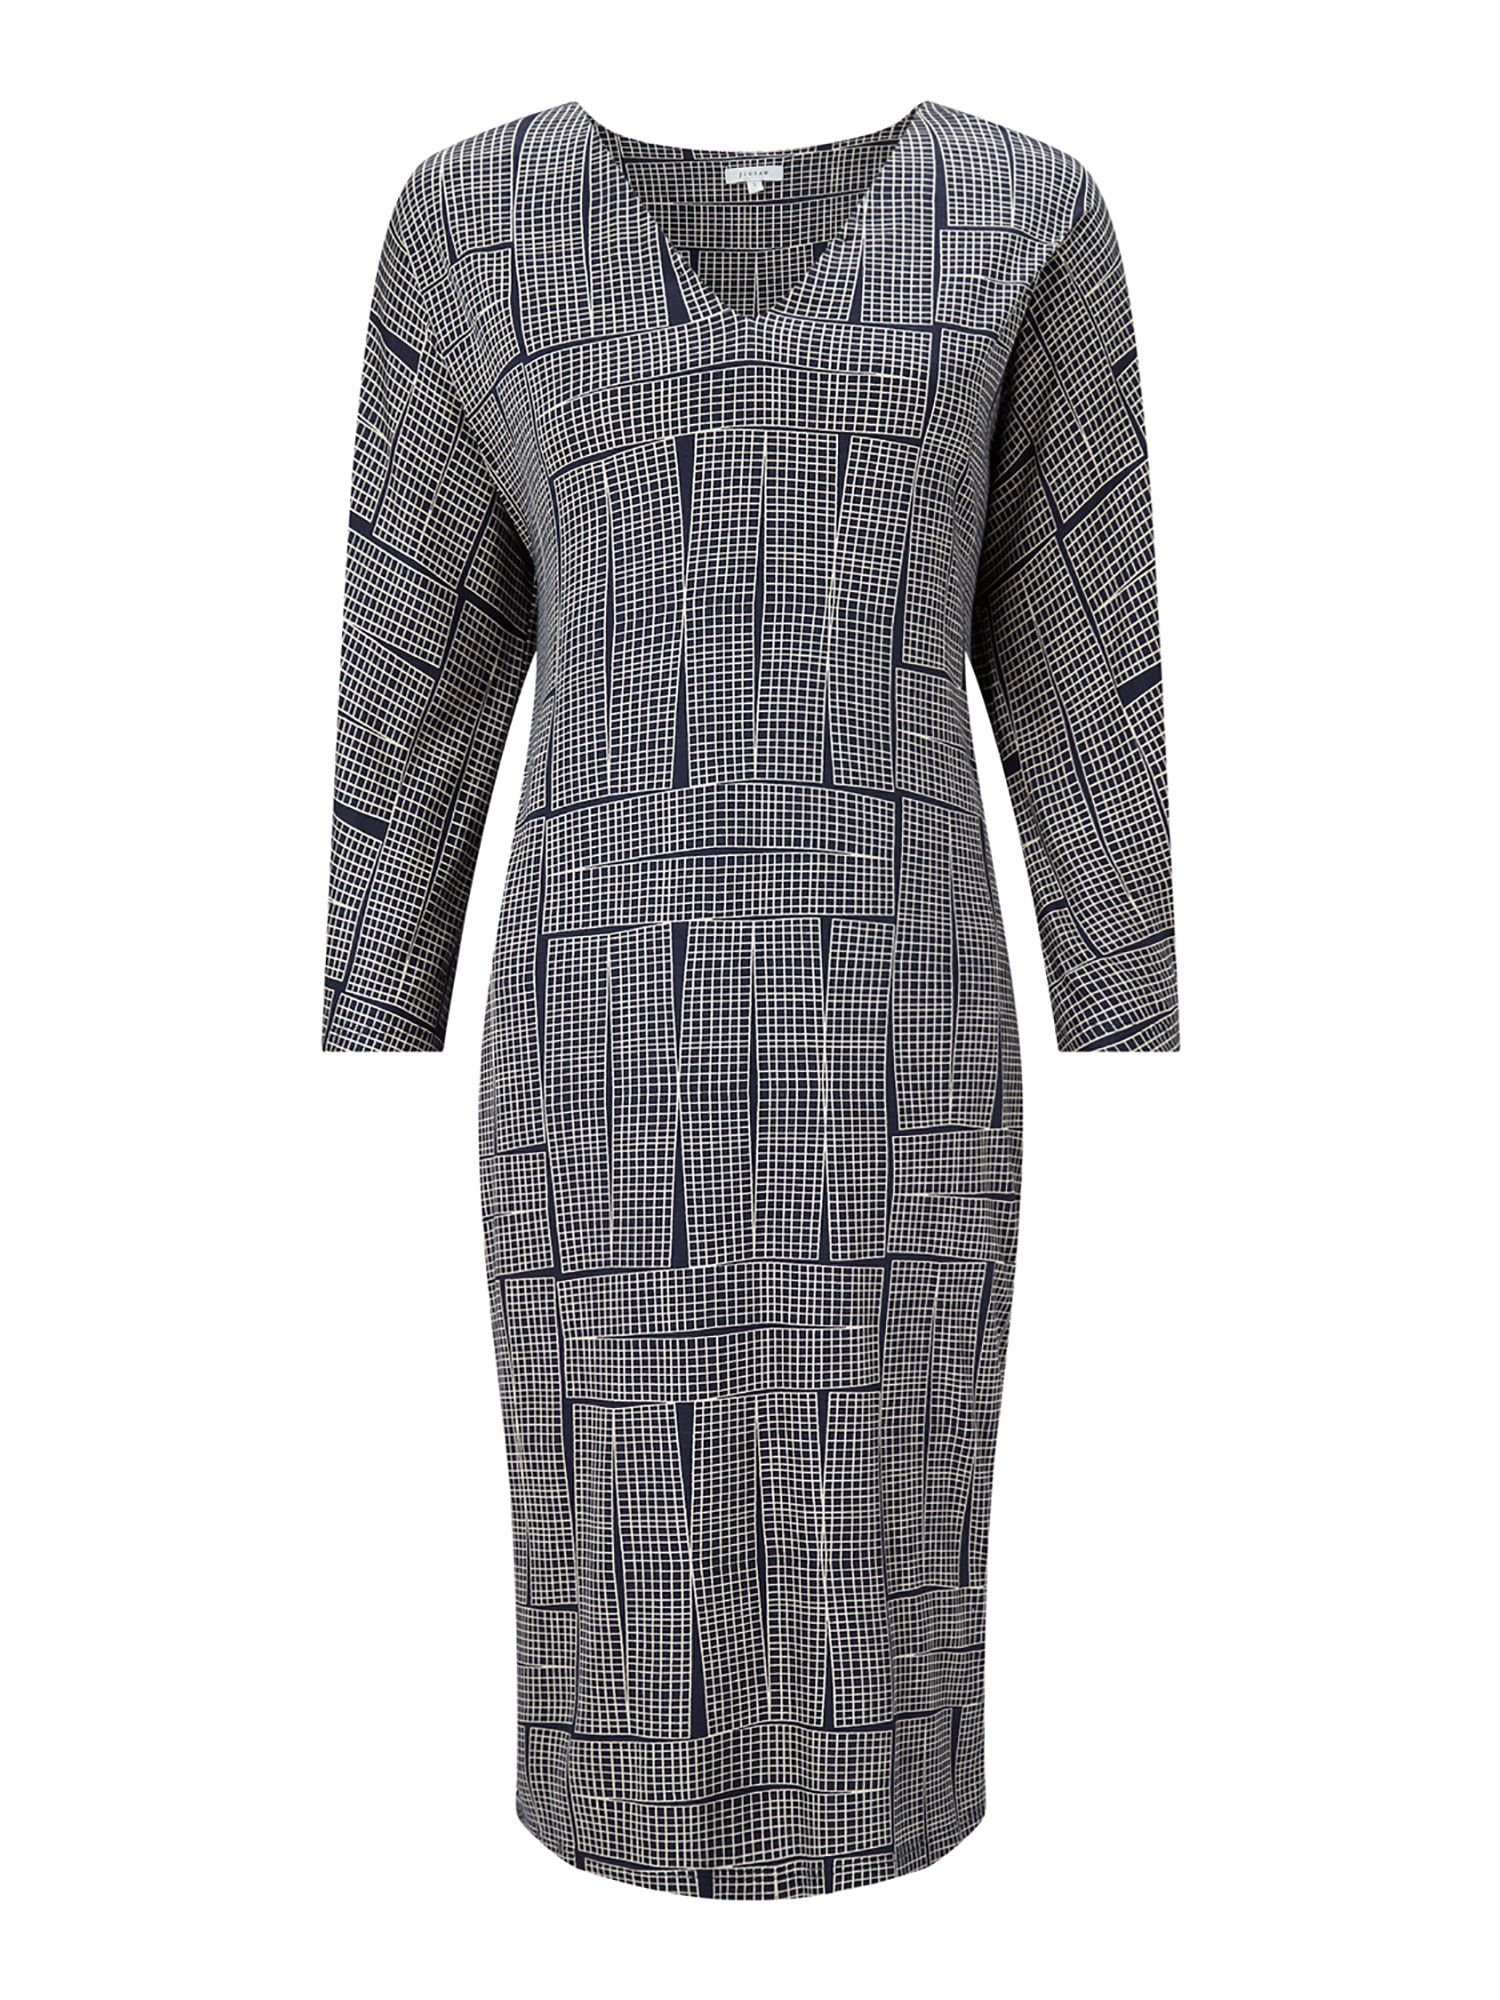 Jigsaw Stacked Grid 3/4 Sleeve Dress, Blue